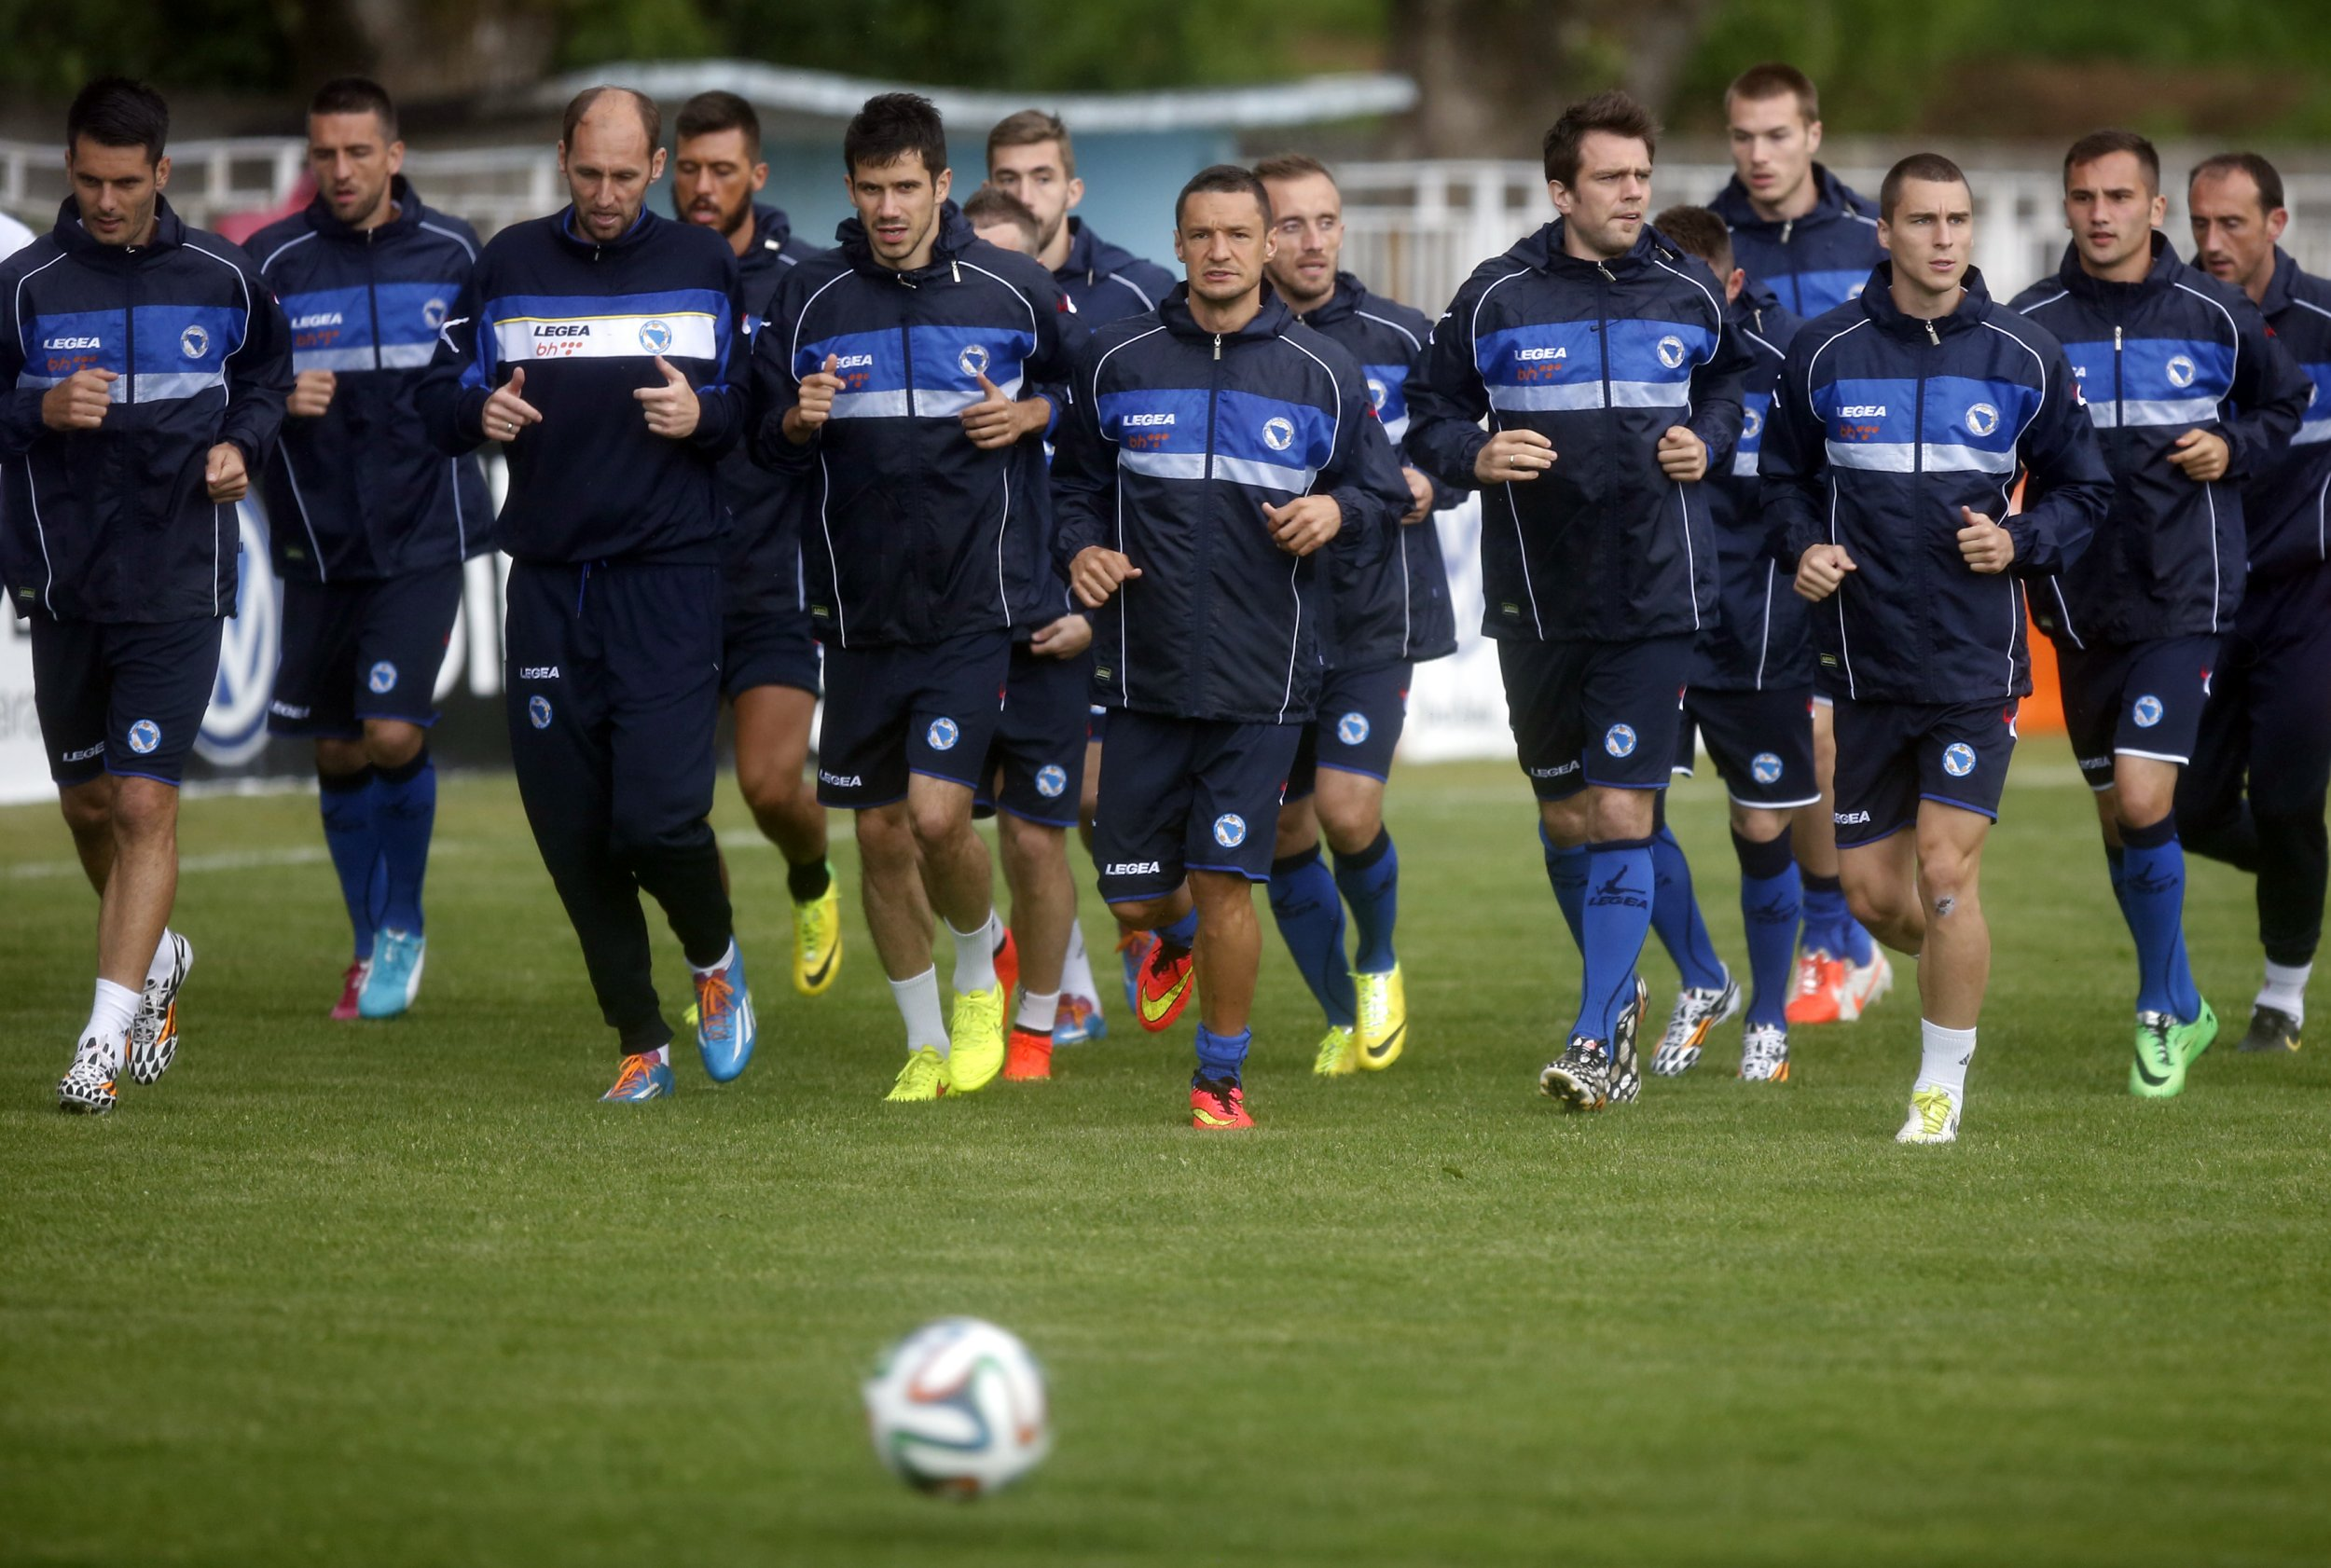 Bosnia national soccer team